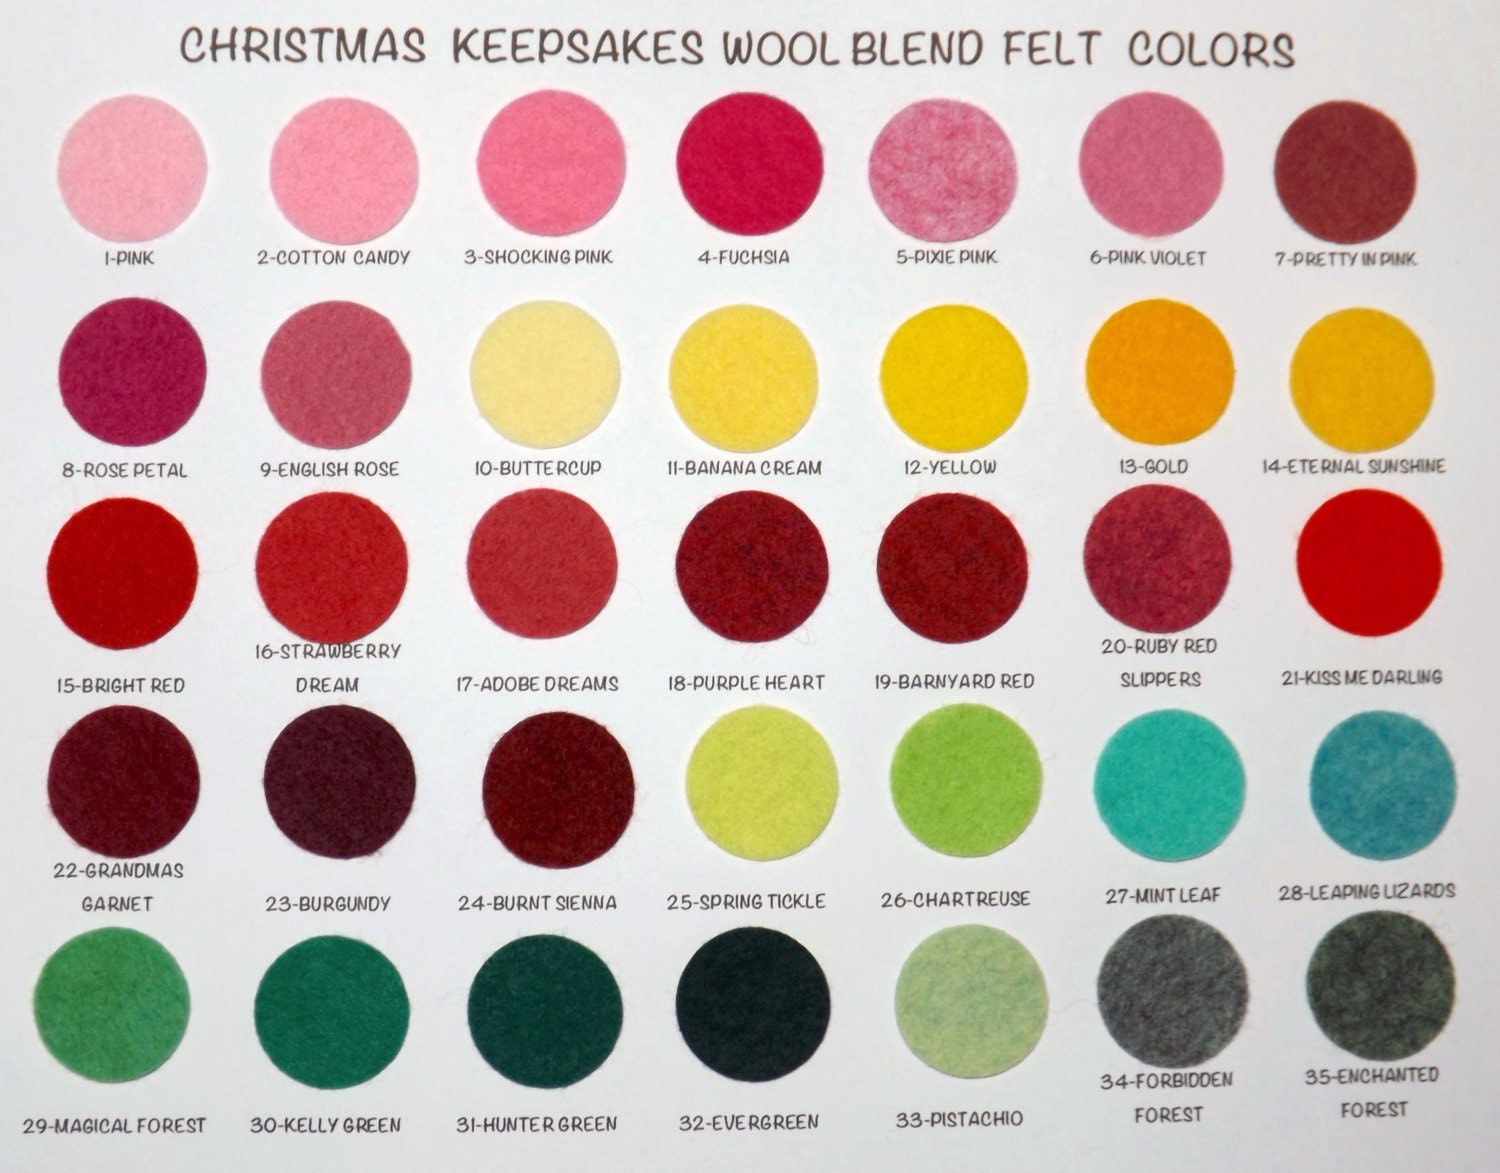 Wool felt sample color chart wool blend felt chart from 700 nvjuhfo Choice Image